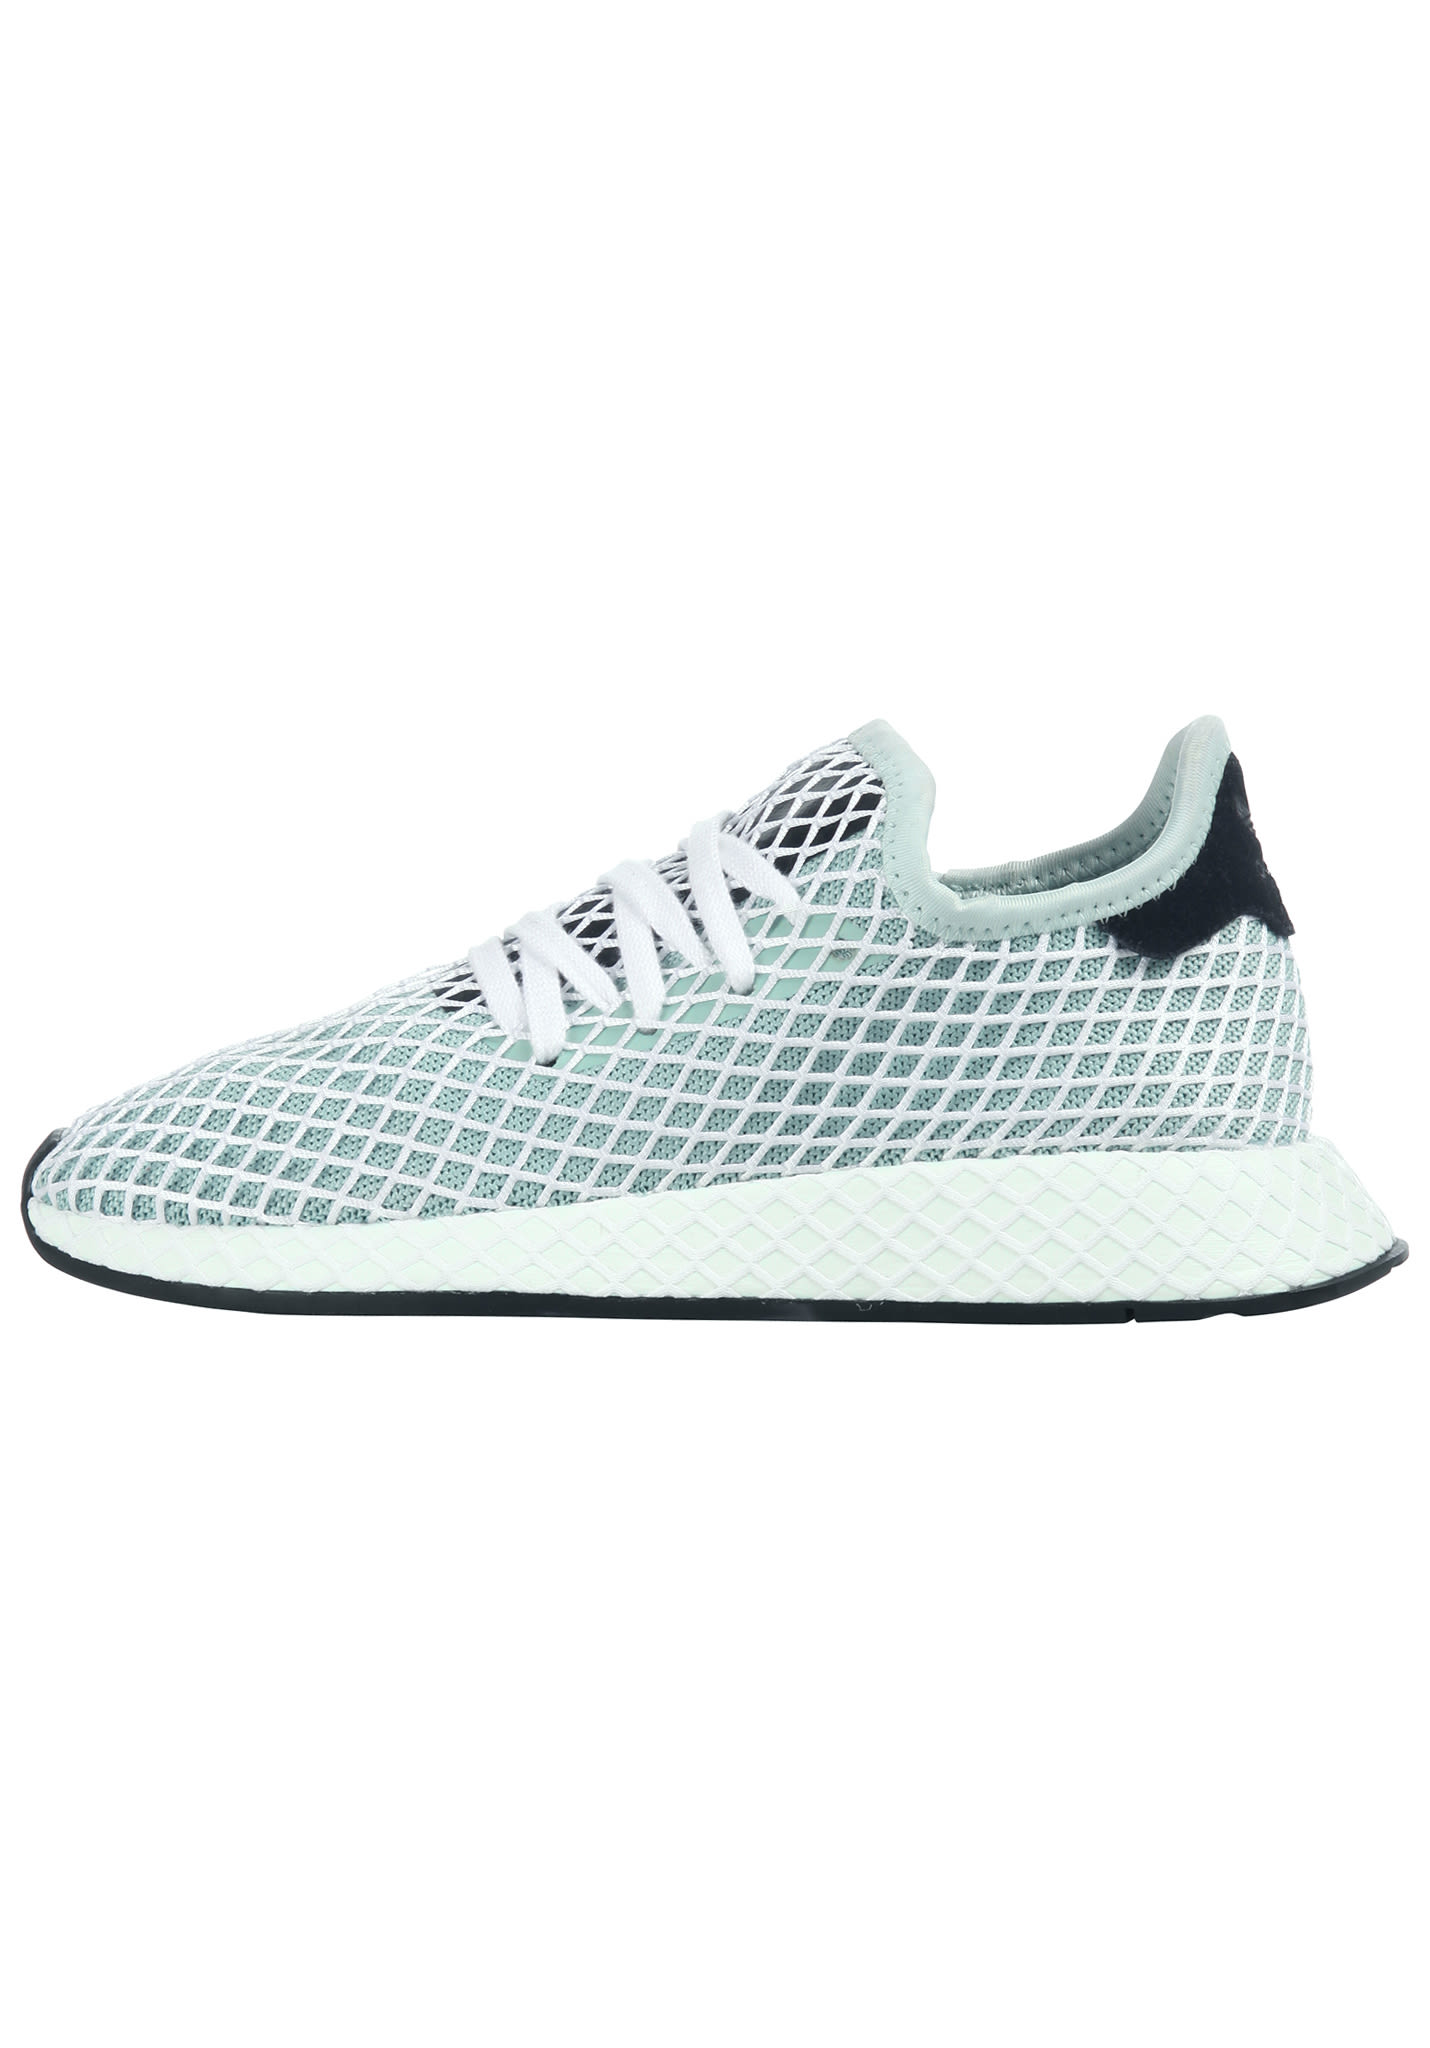 d0d2e3fd5087 ADIDAS ORIGINALS Deerupt Runner - Sneakers for Women - Green ...